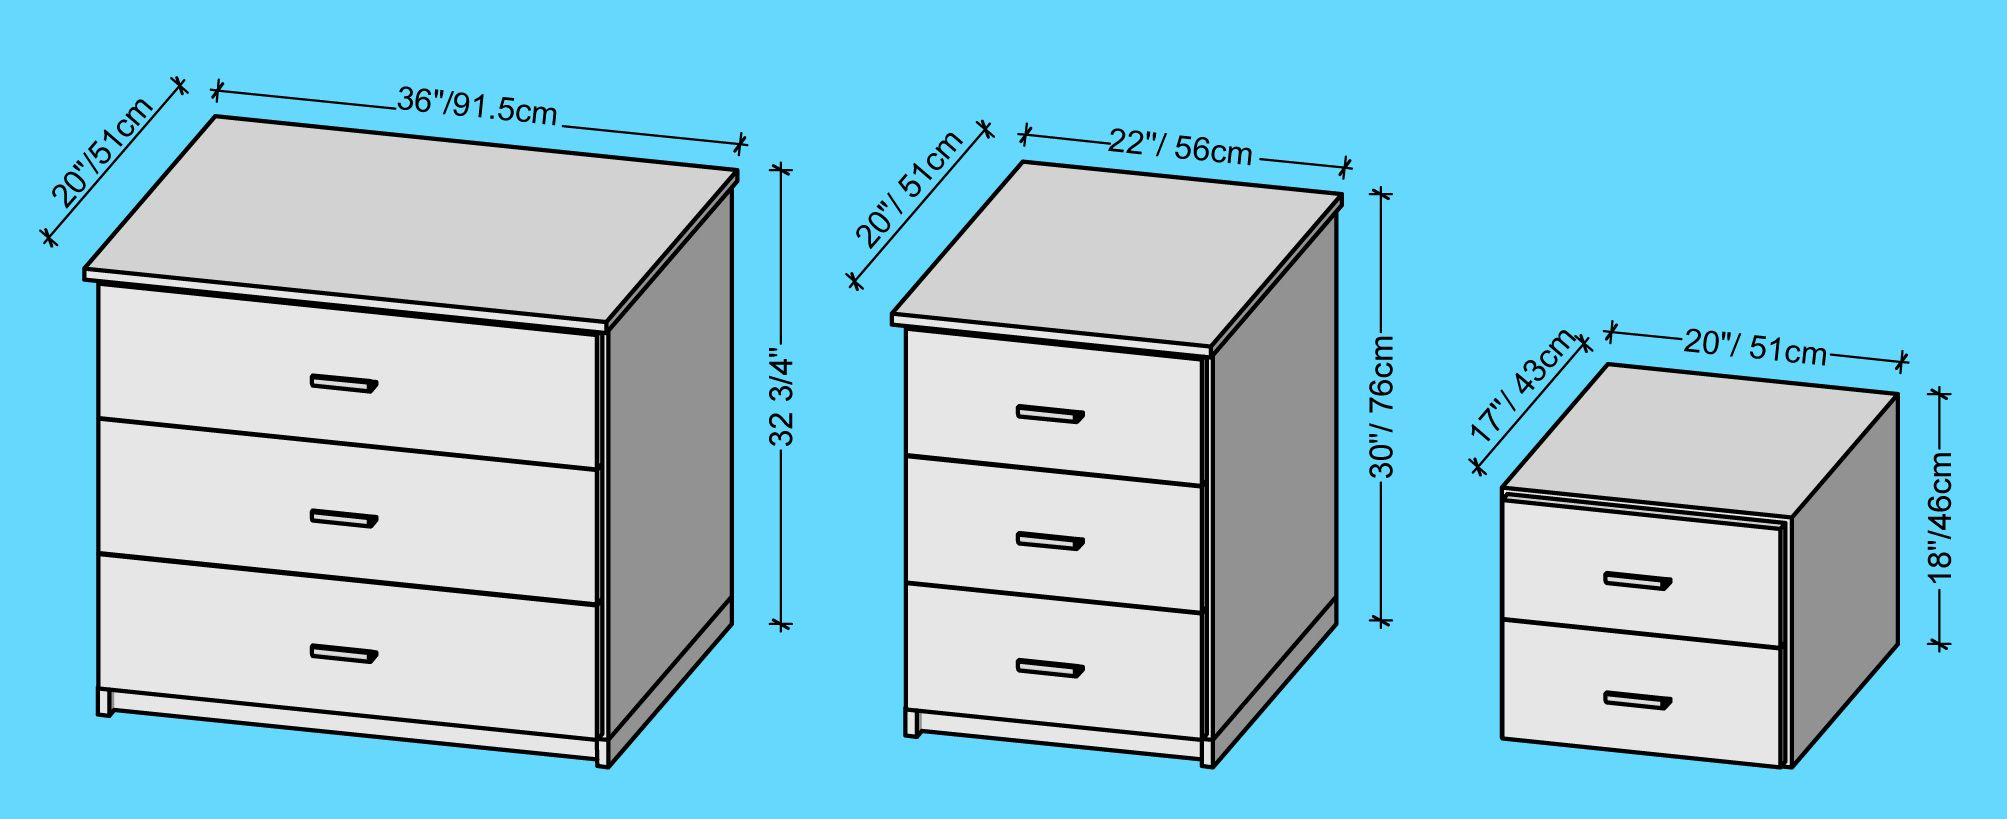 Tall Bedside Tables Australia Image Result For Height Of Bedside Table Ergonomics